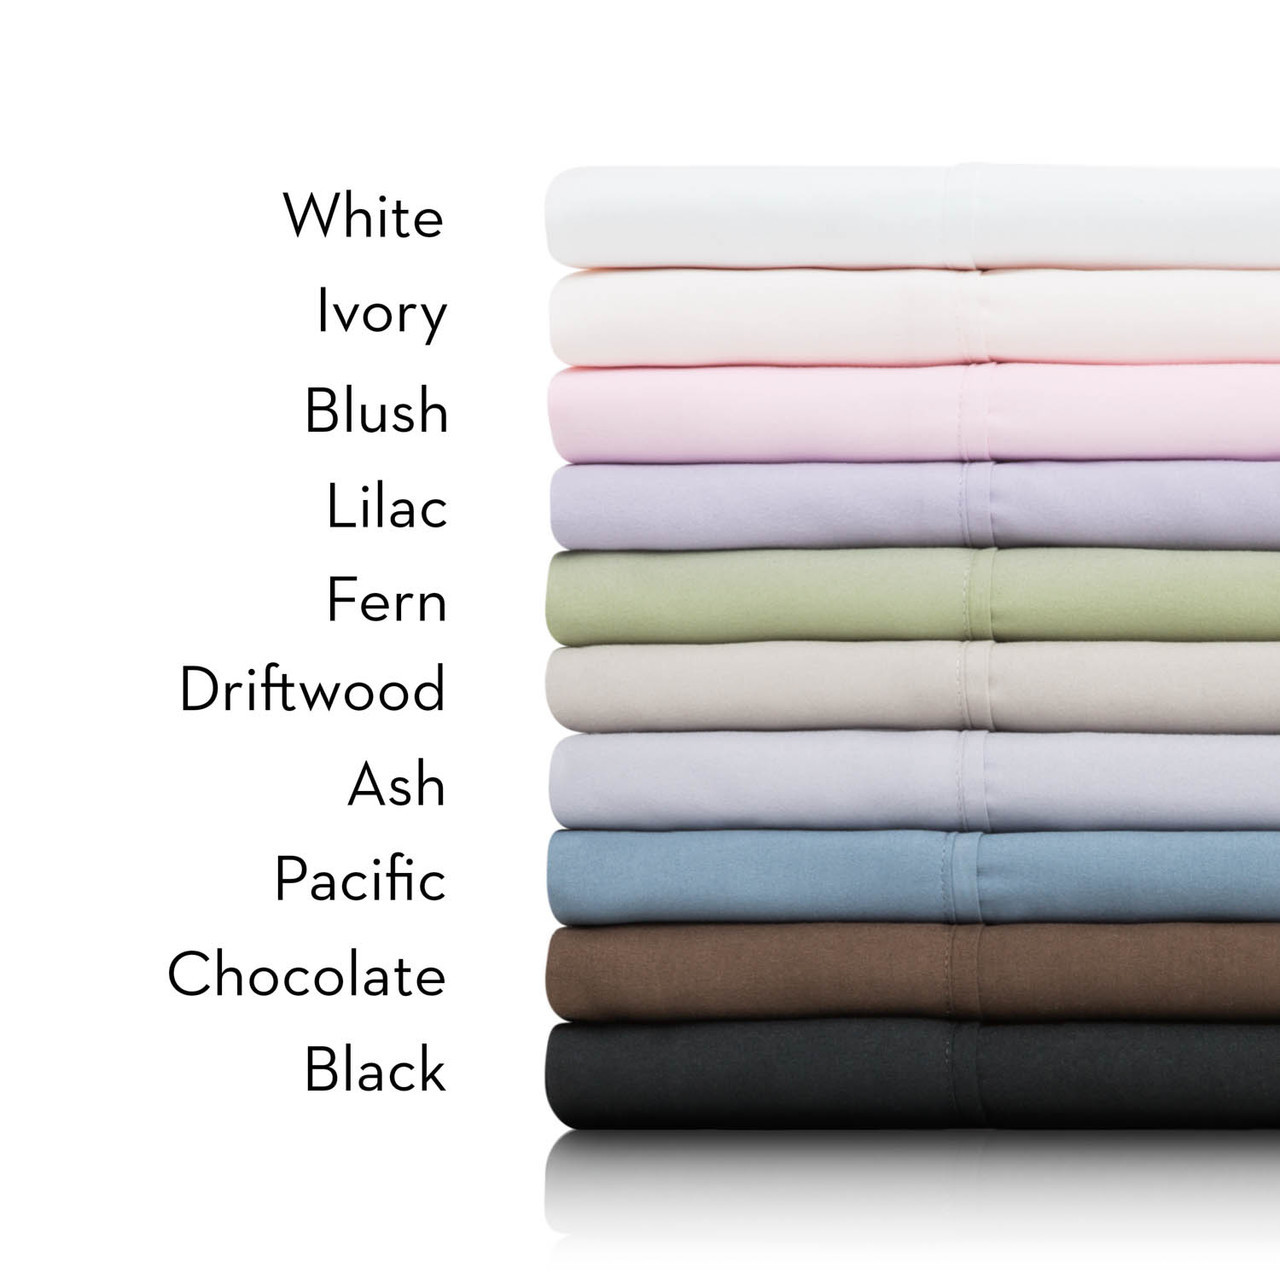 Malouf Woven Brushed Microfiber Bed Sheets Dealbeds Com